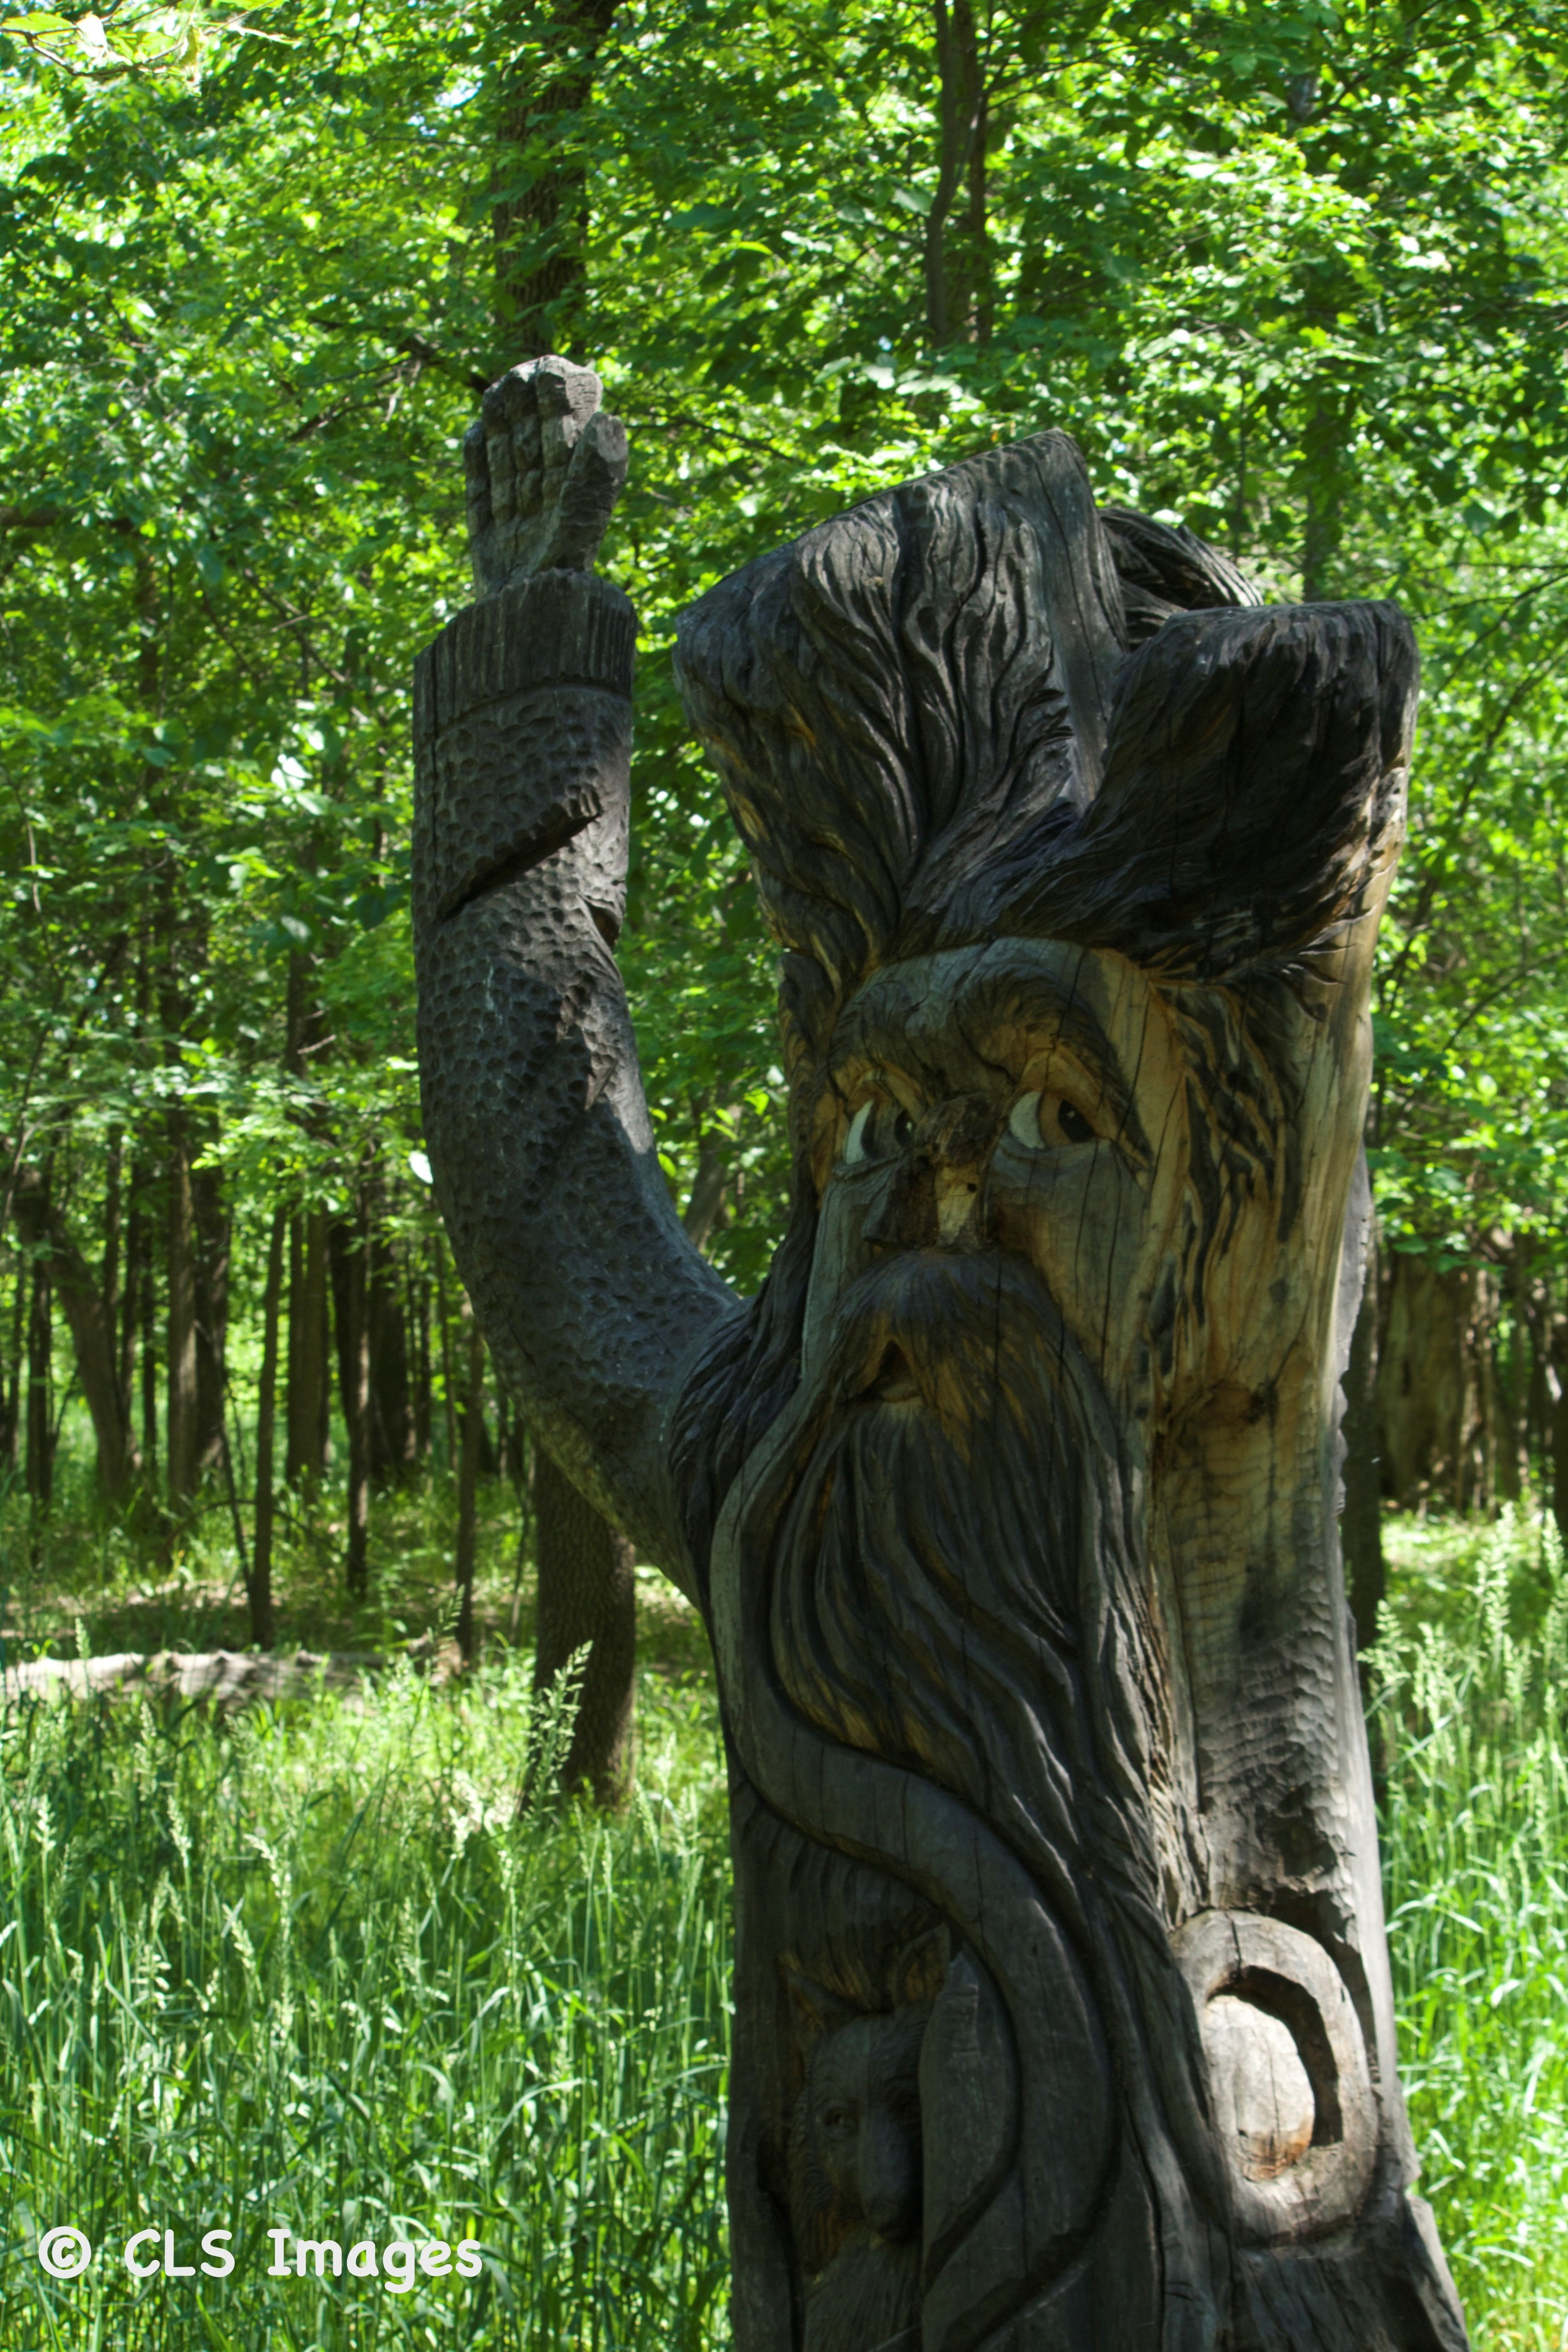 Our destination was to see Woody… the largest Tree Spirit in the forest!